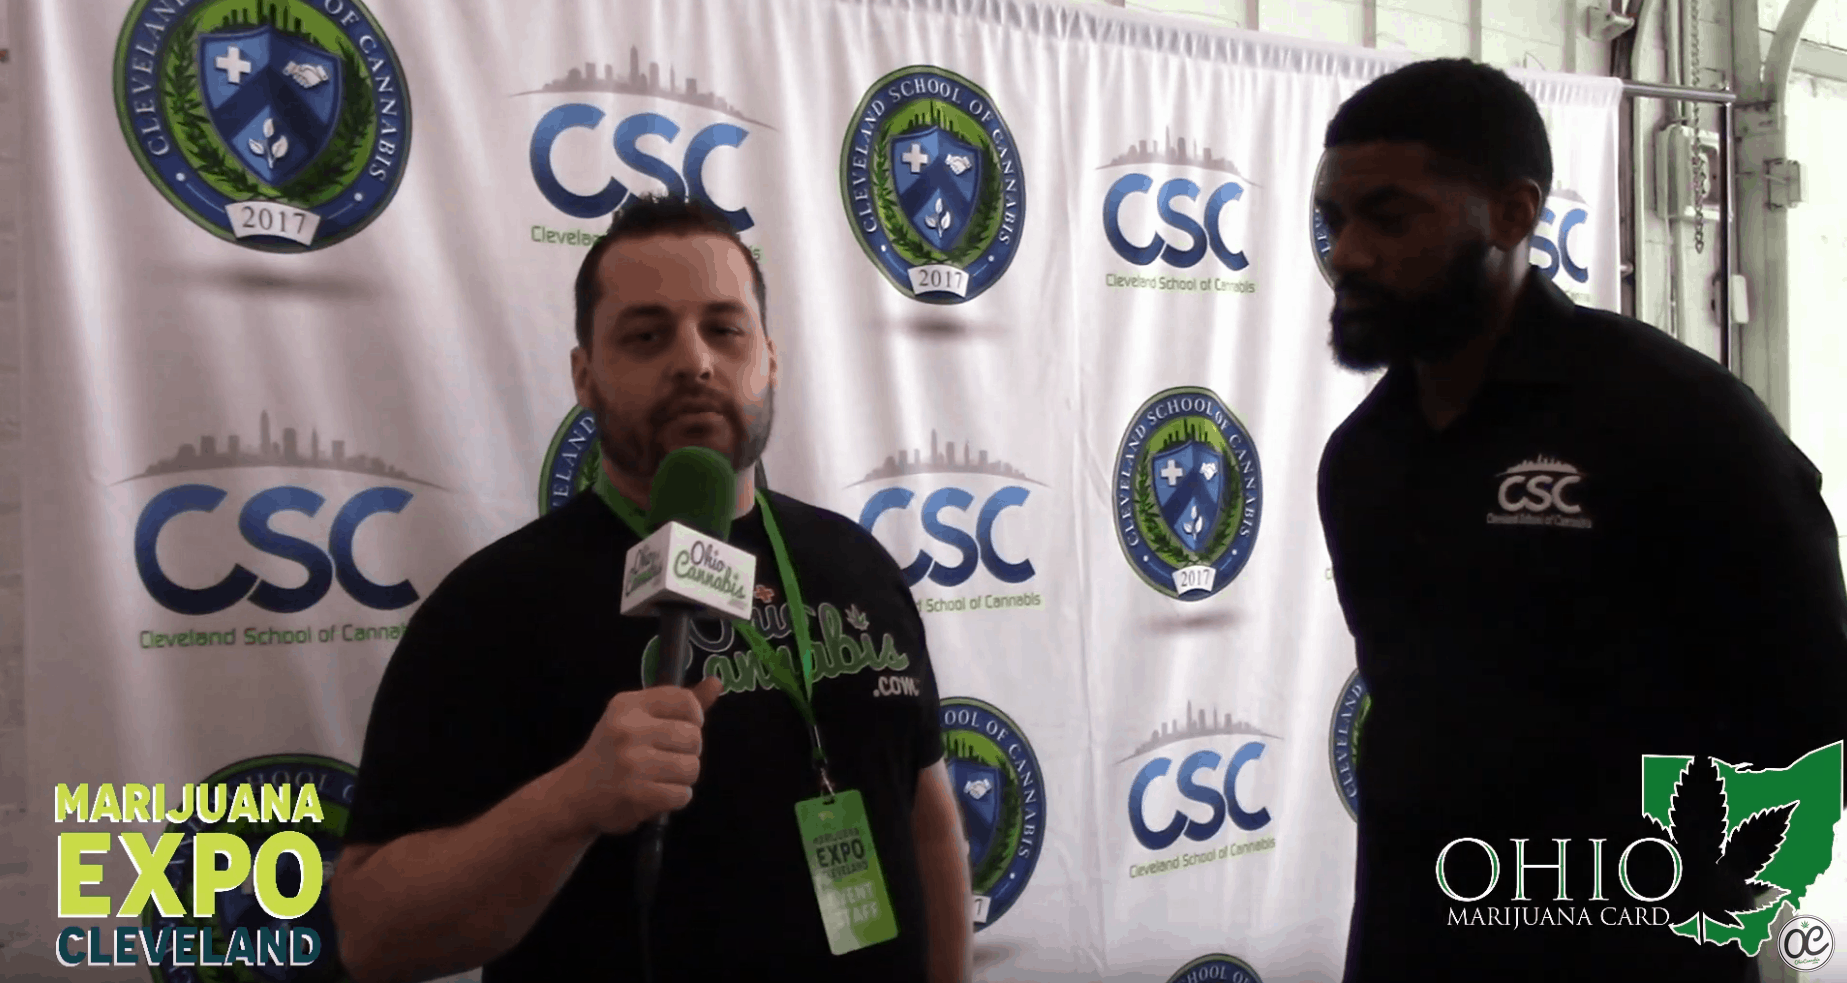 Johnny & Tyrone Russel from Cleveland School of Cannabis